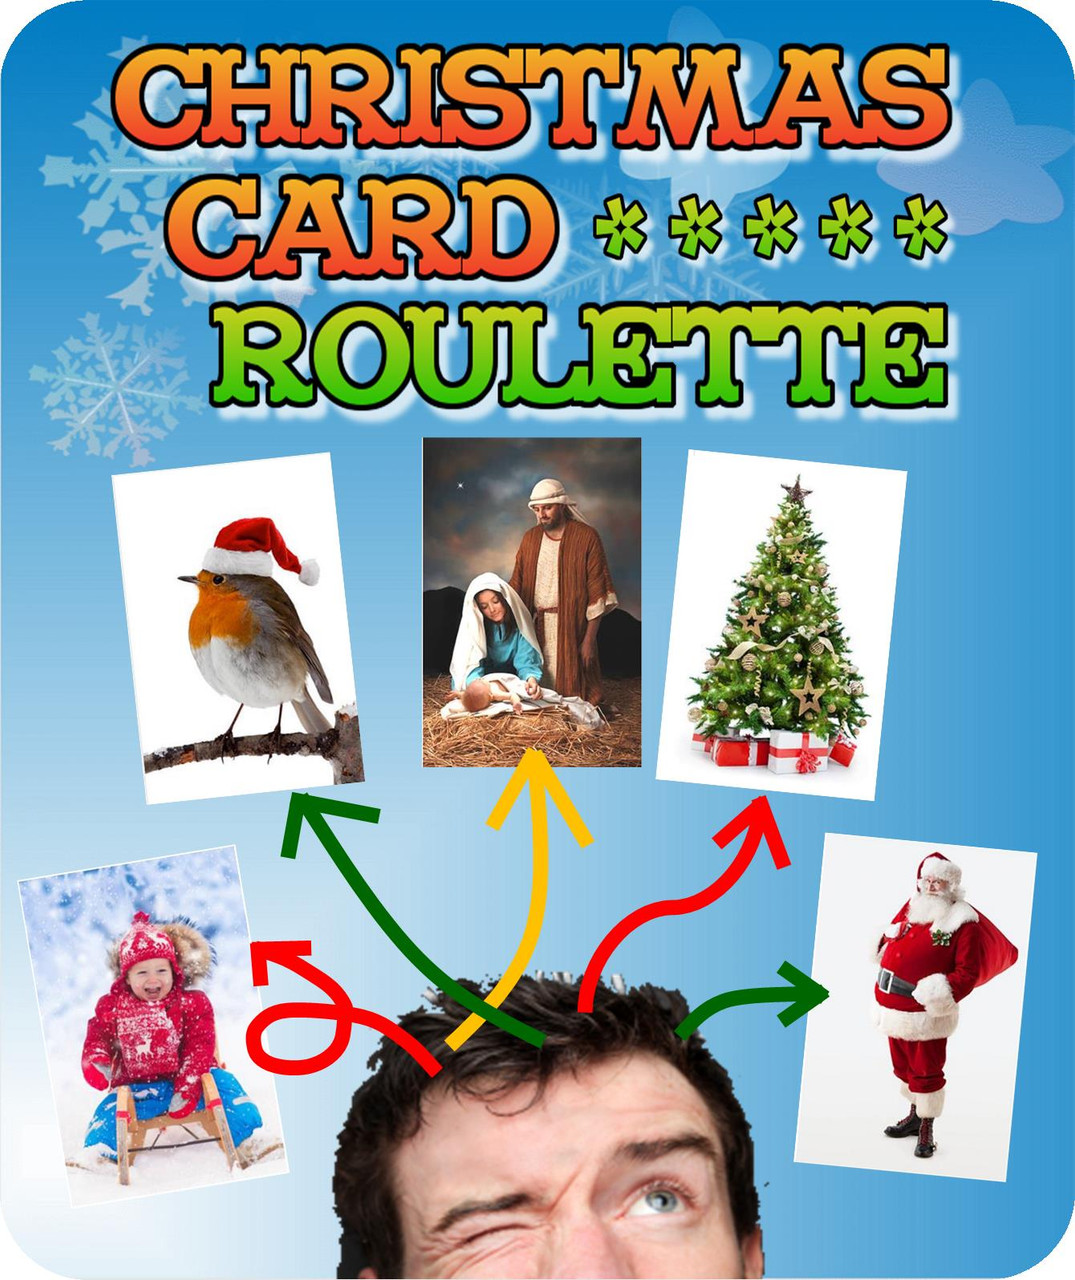 Christmas Card Roulette Gospel Magic Trick